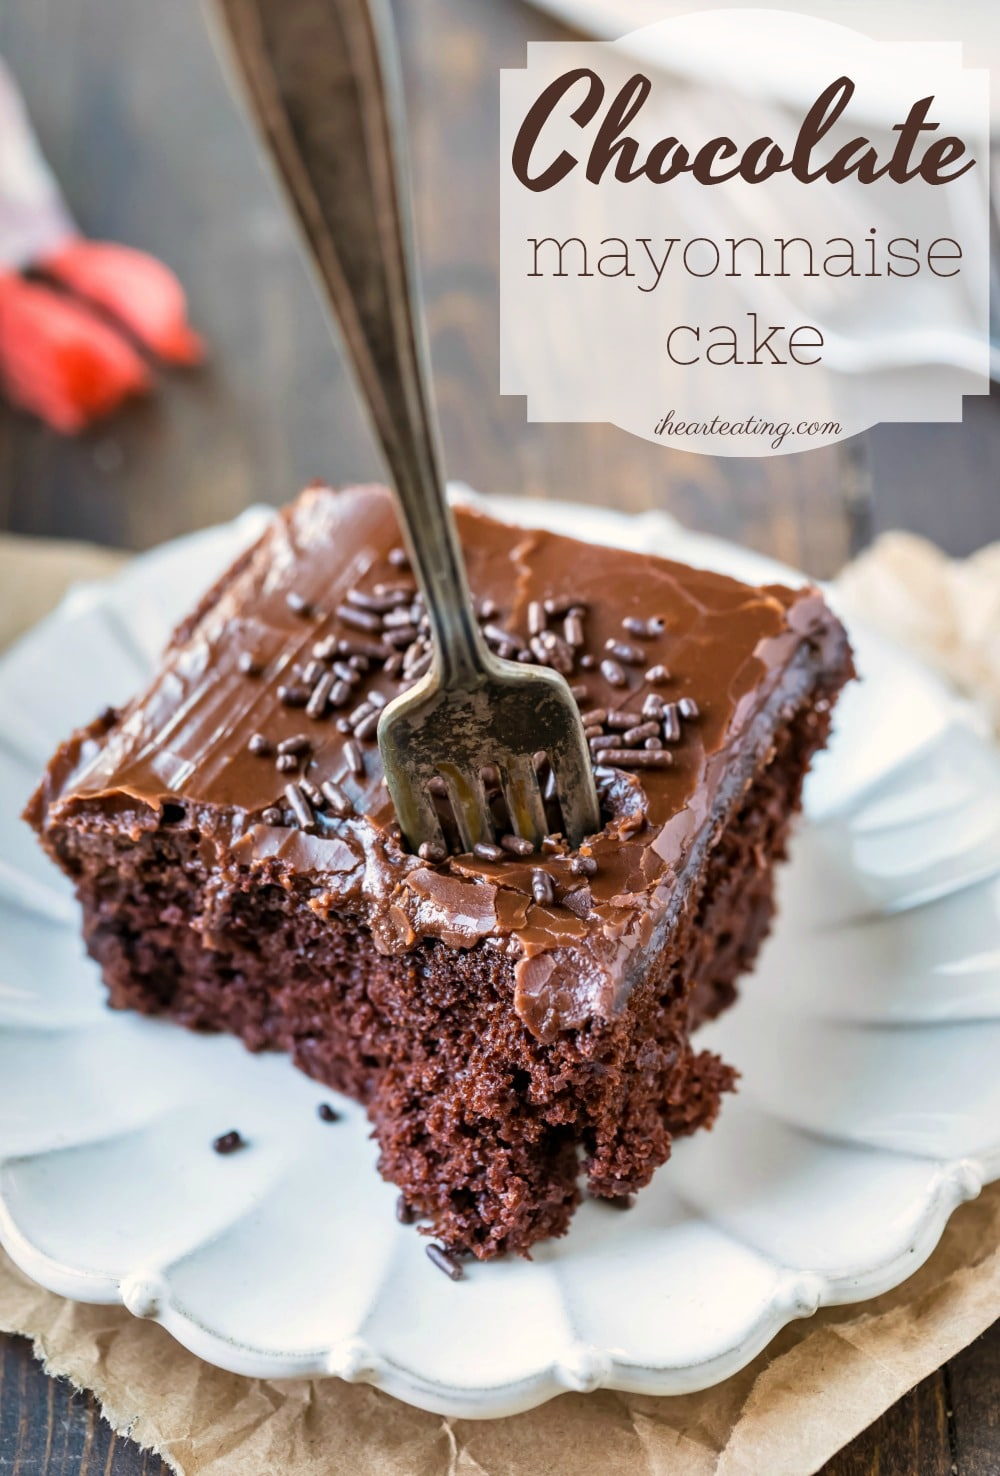 Chocolate mayonnaise cake is a moist chocolate cake that's made from scratch. This dense, not-too-sweet vintage homemade chocolate cake pairs well with sweet chocolate or vanilla buttercream frosting. #chocolate #cake #chocolatecake #dessert #moist #homemade #easy #ihearteating